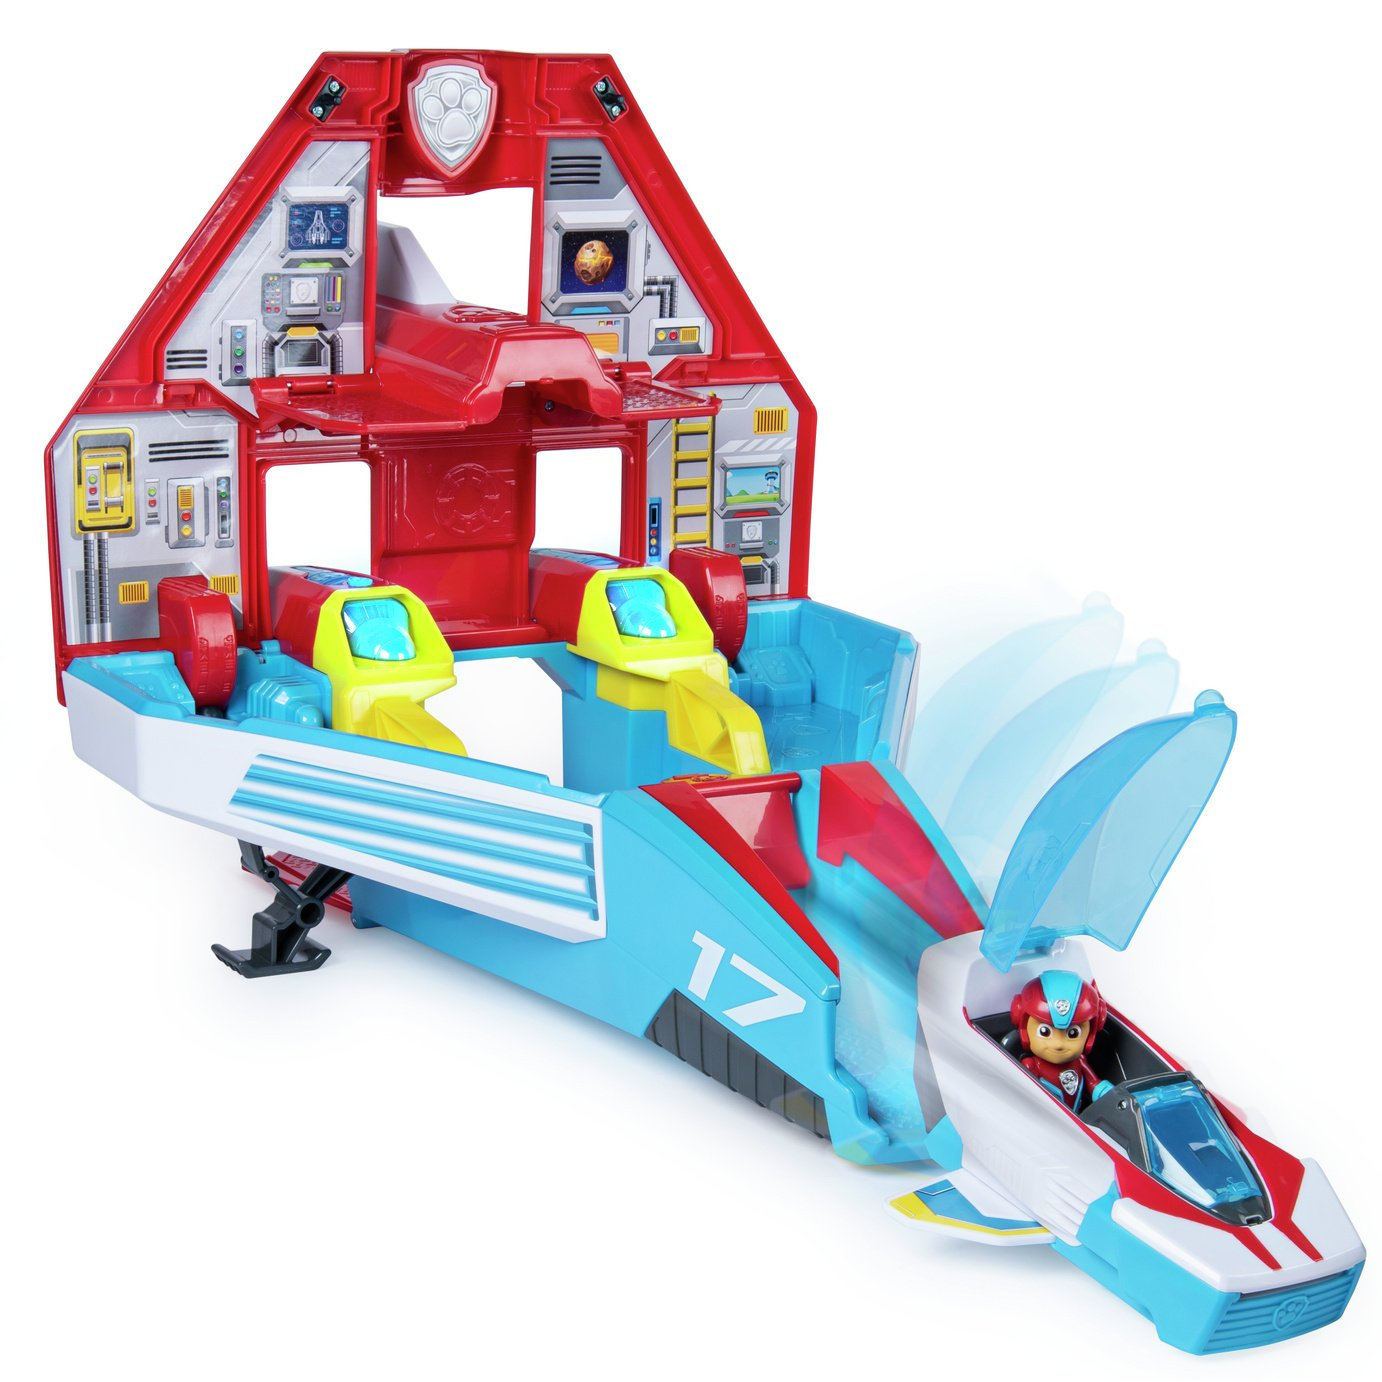 PAW Patrol Mighty Pups Superpaw Jet